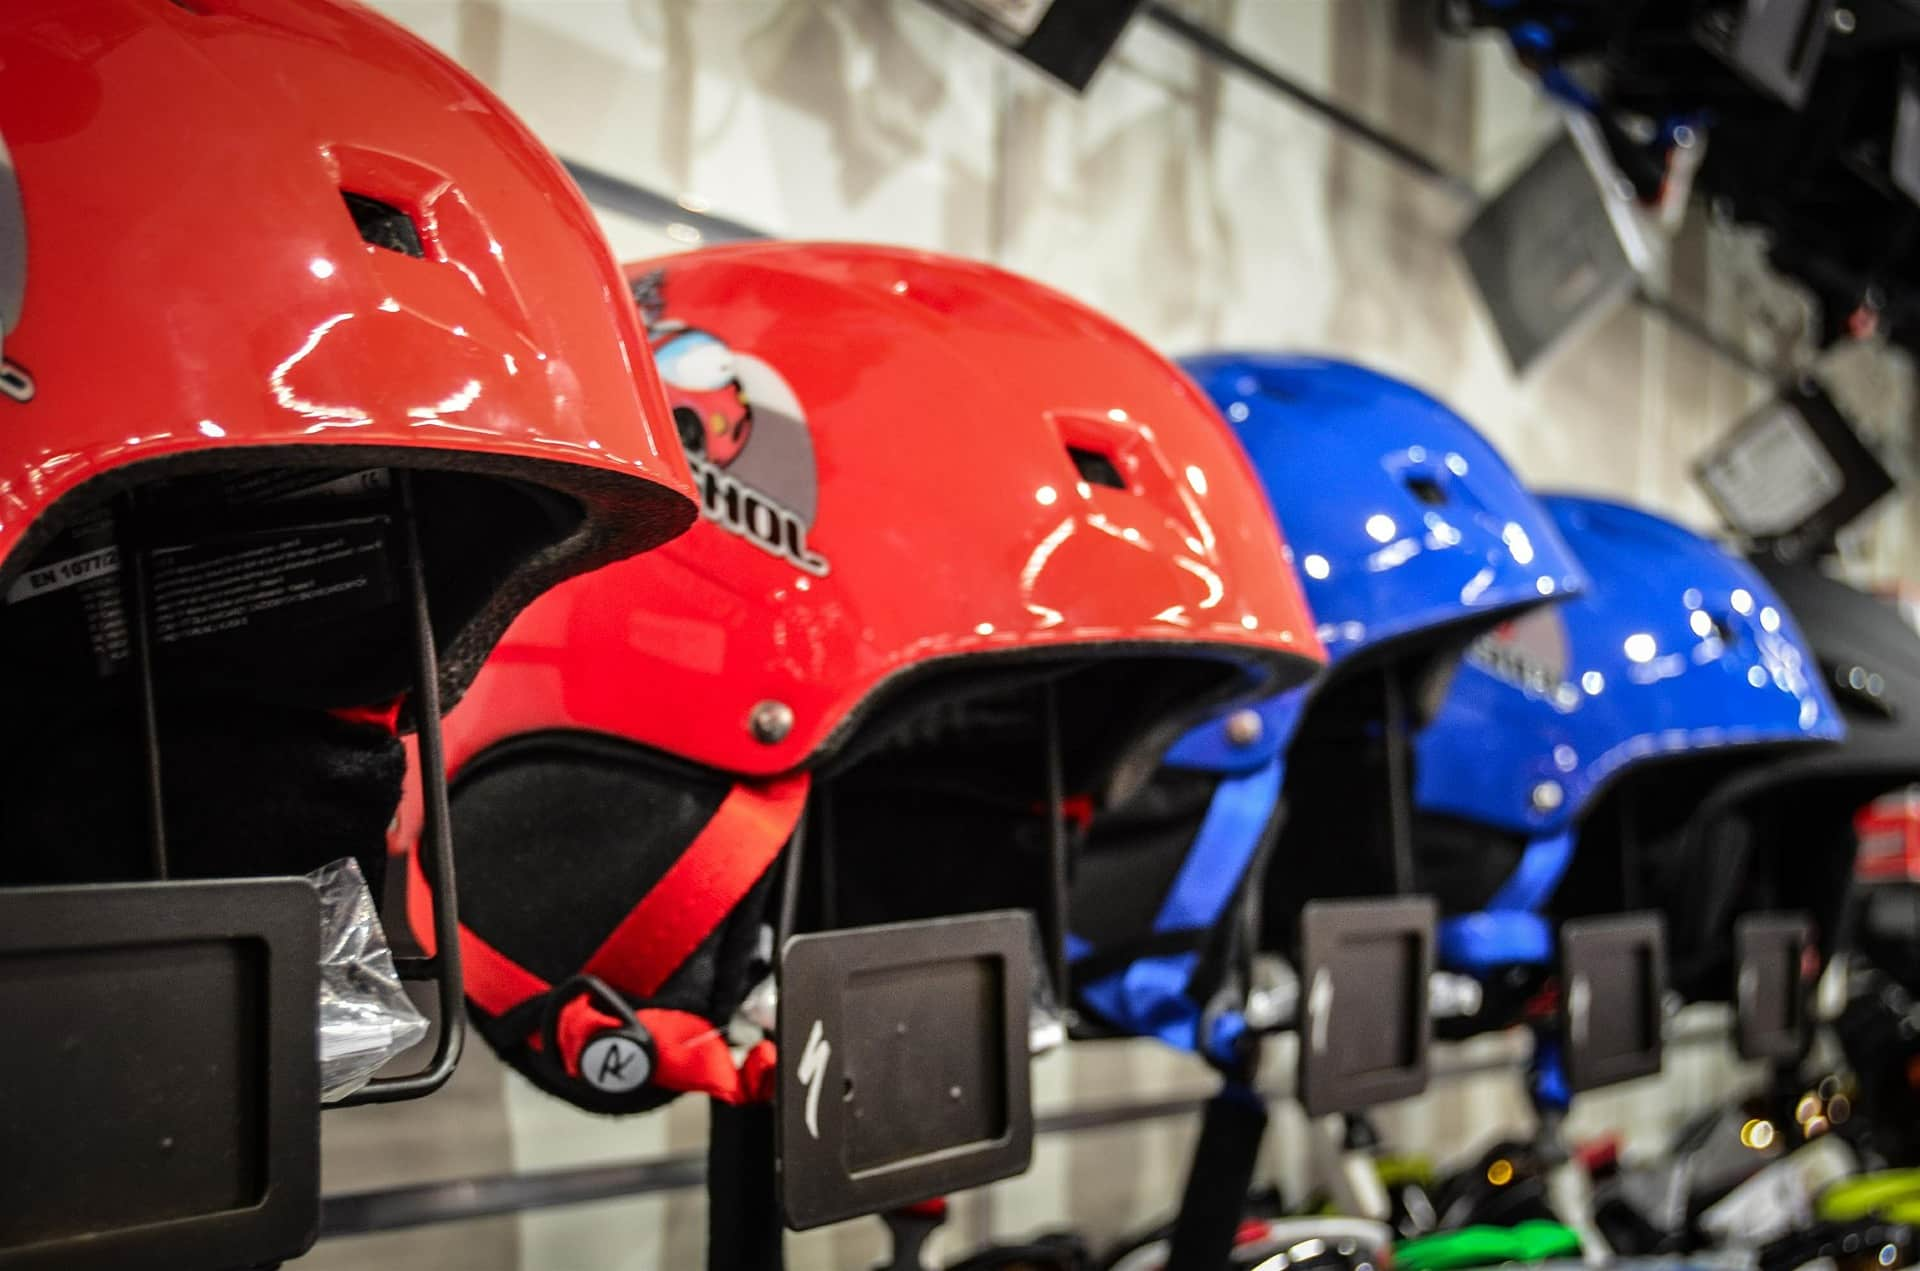 Row of red and blue ski helmets